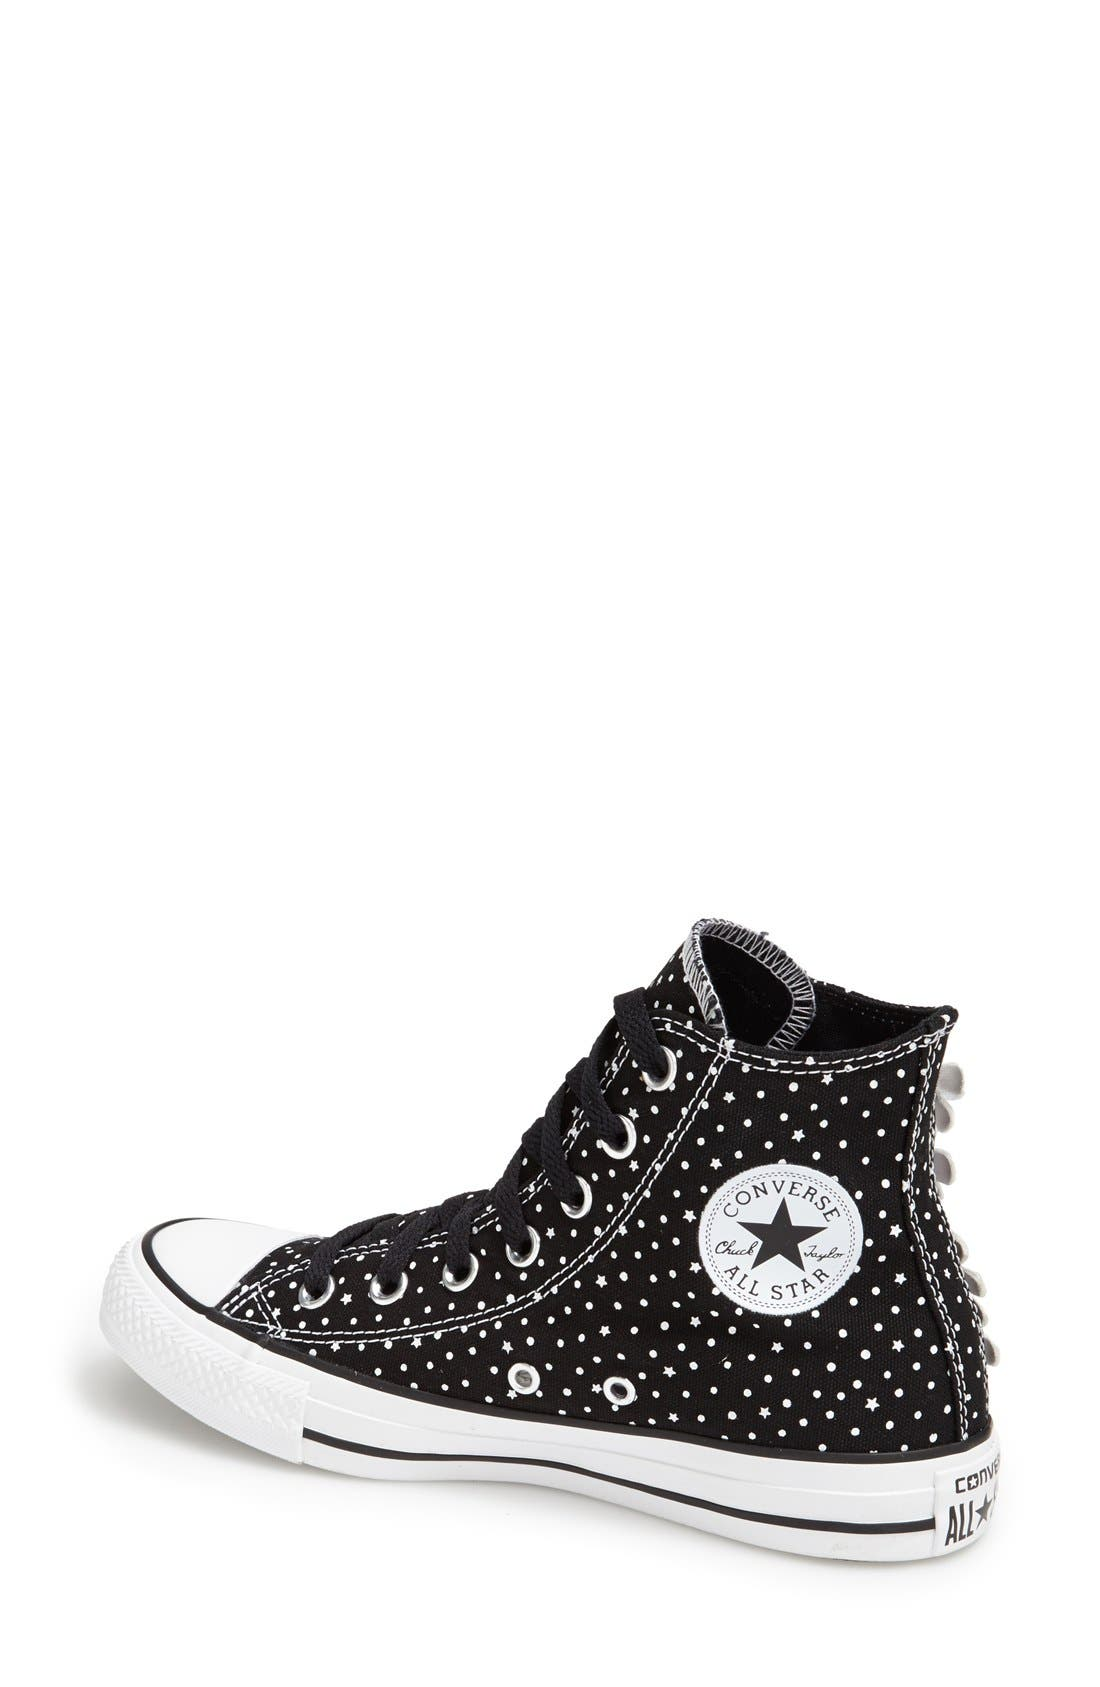 Alternate Image 2  - Converse Chuck Taylor® All Star® 'Floral Polka Dot' High Top Sneaker (Women)